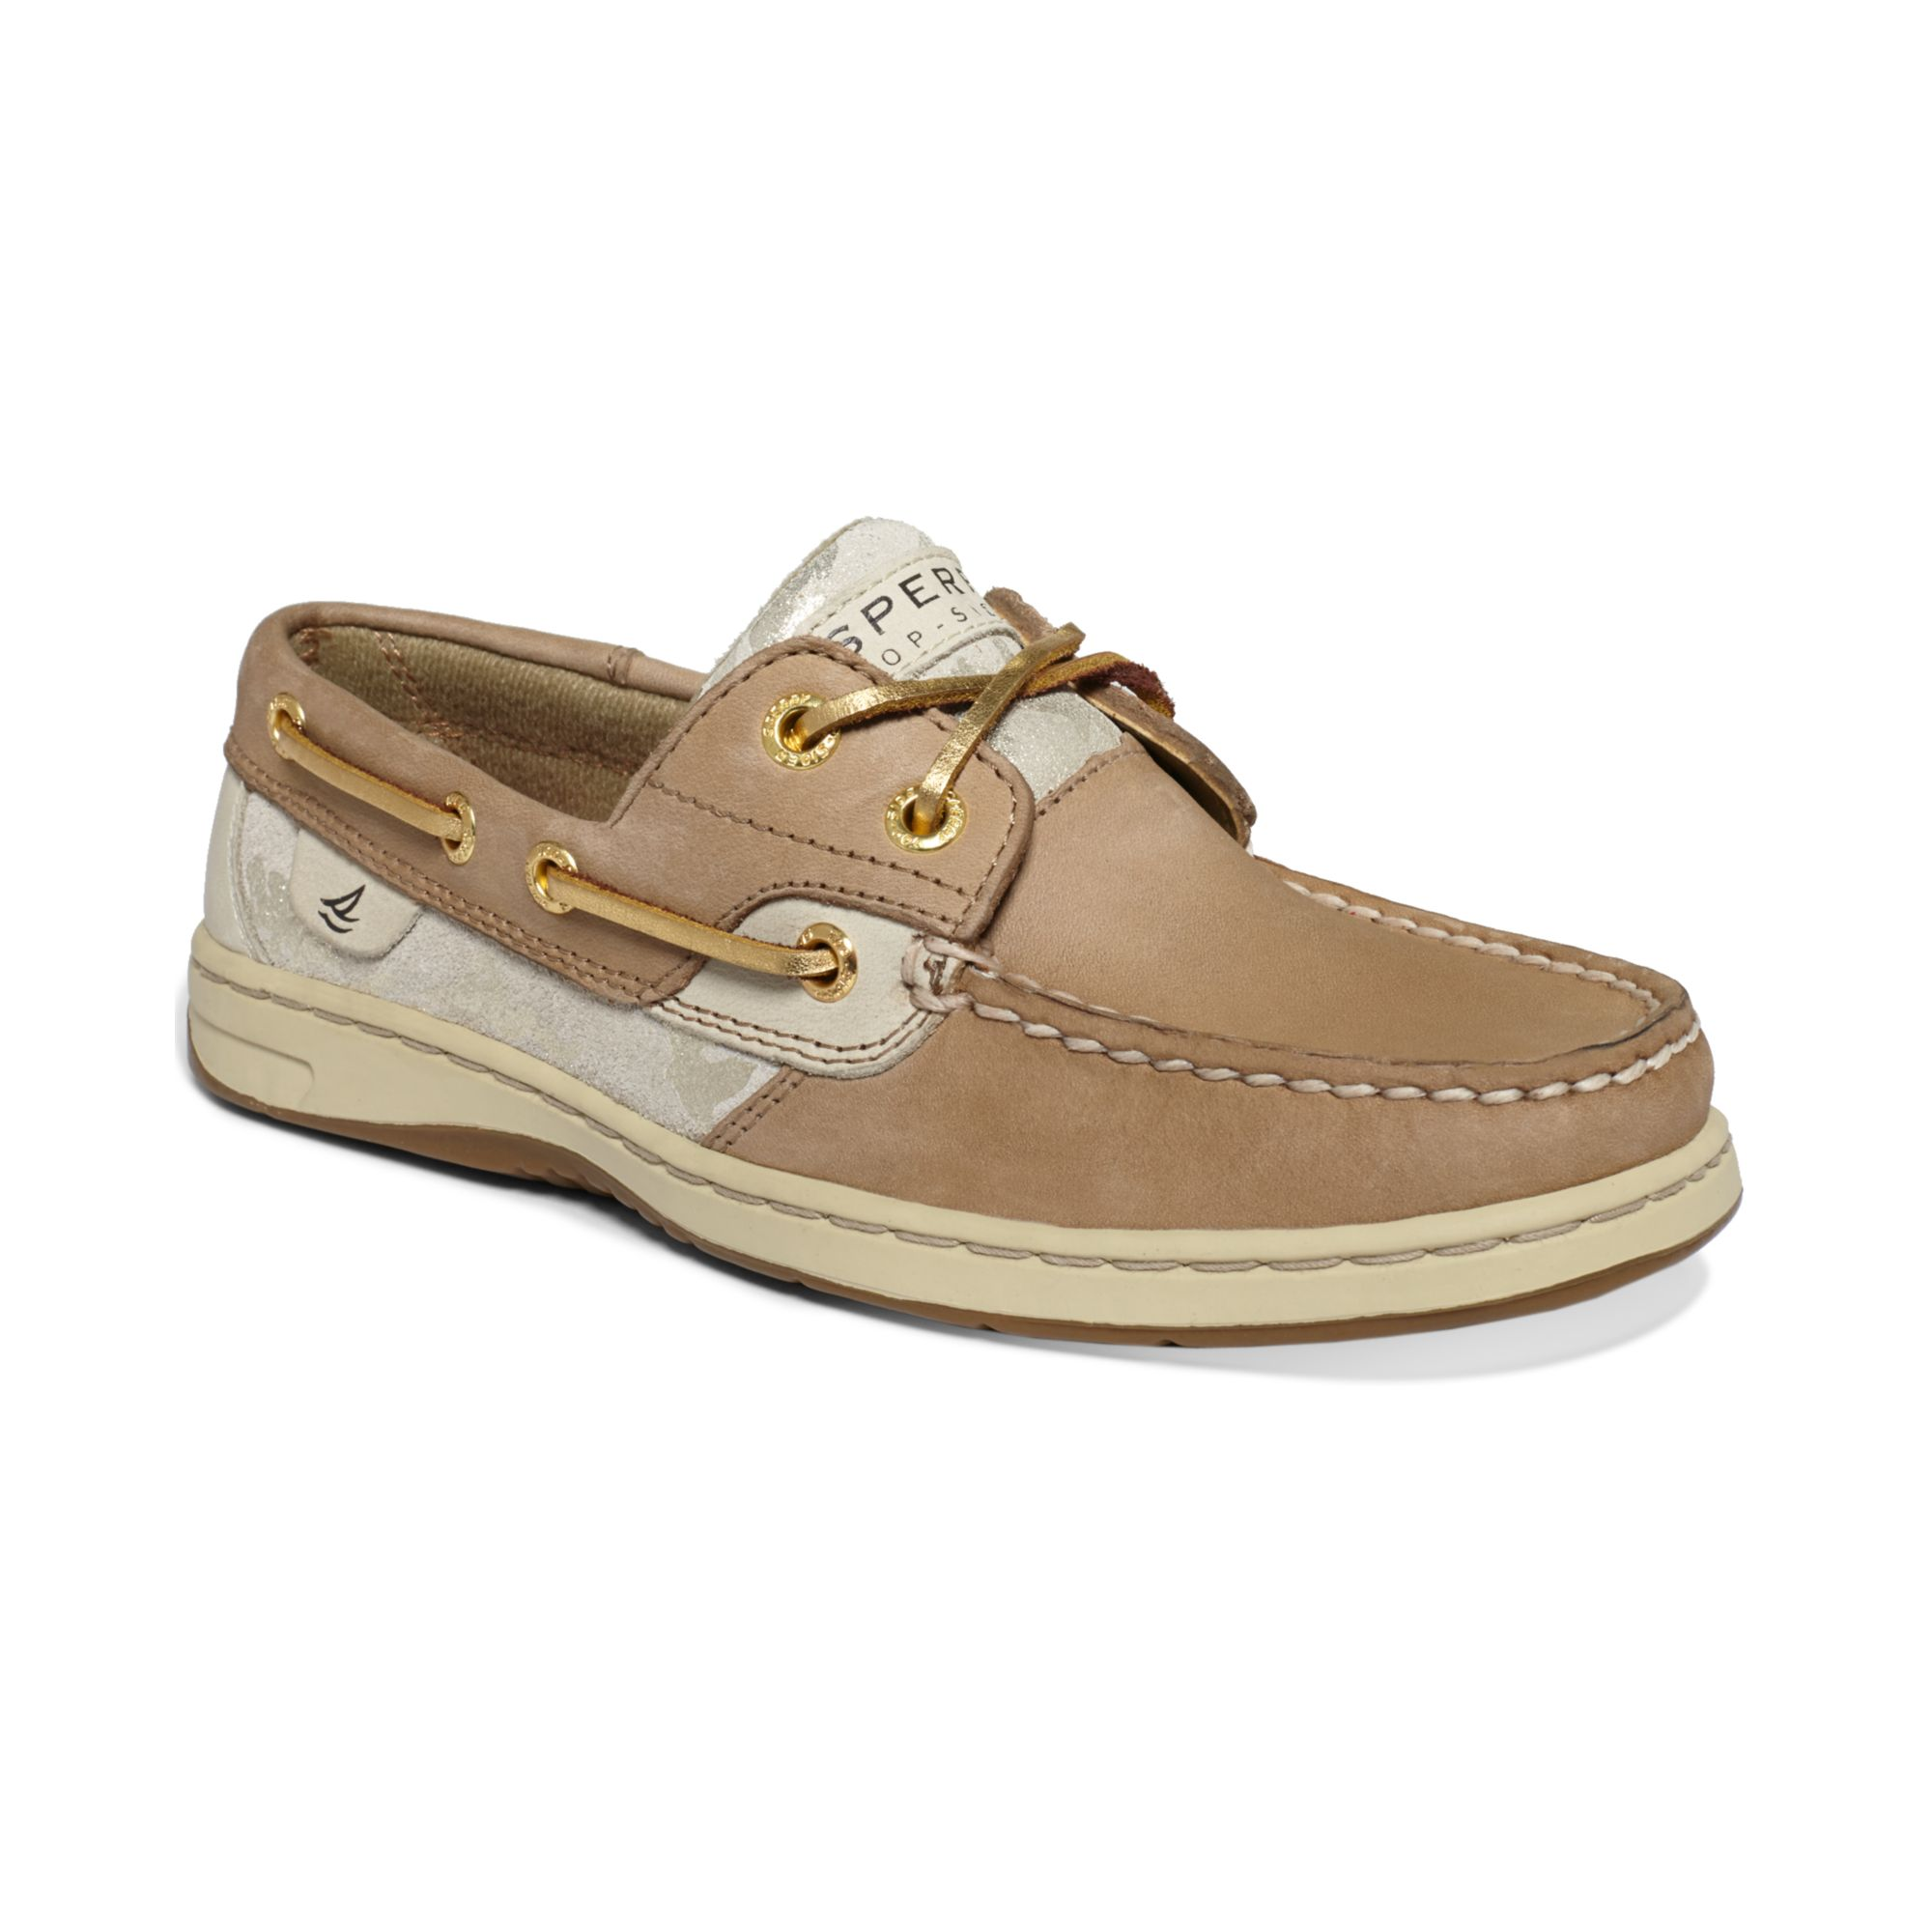 The world's first boat shoe, the Sperry top-sider, was born in Paul Sperry had been working on a shoe that would let him safely navigate the slippery deck of is sailboat, and inspiration struck as he watched his cocker spaniel, Prince, run effortlessly across the icy New England landscape.